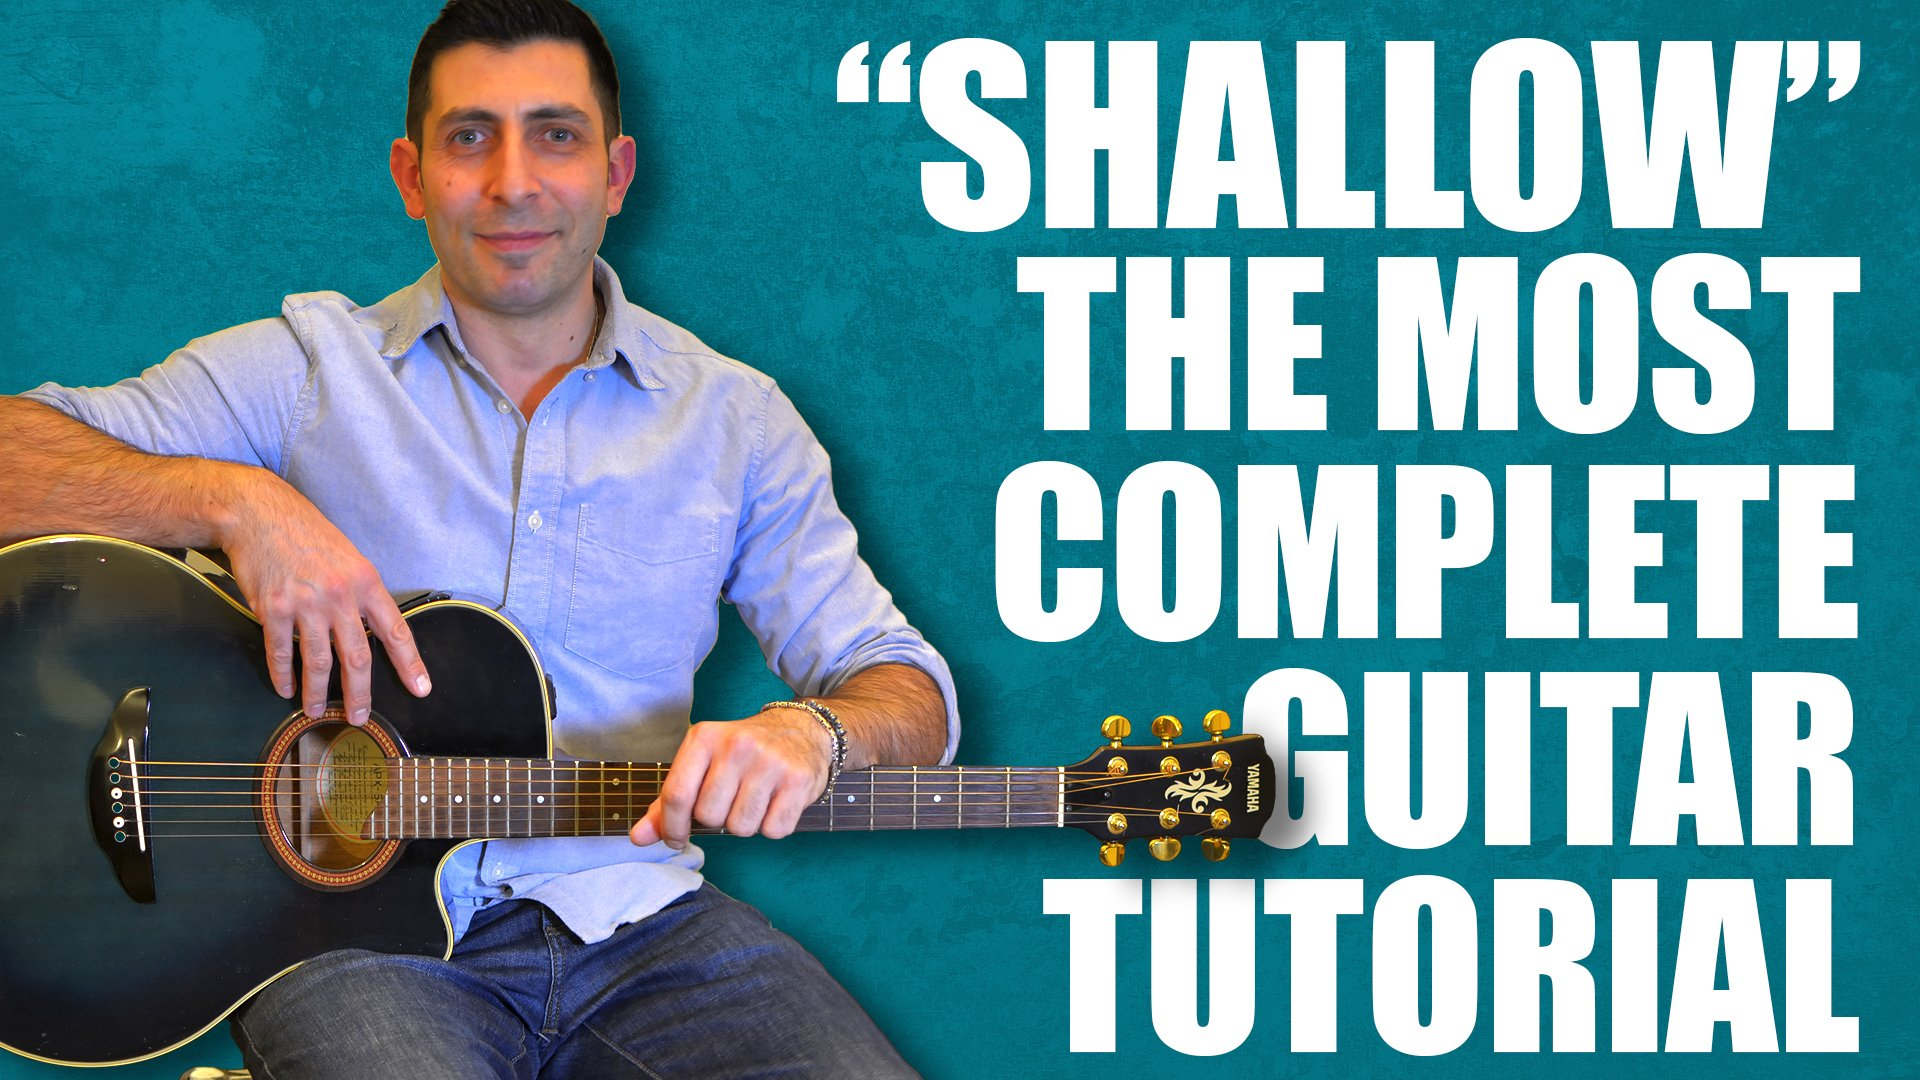 How to play shallow on the acoustic guitar, fingerstyle, chords, guitar strumming patterns